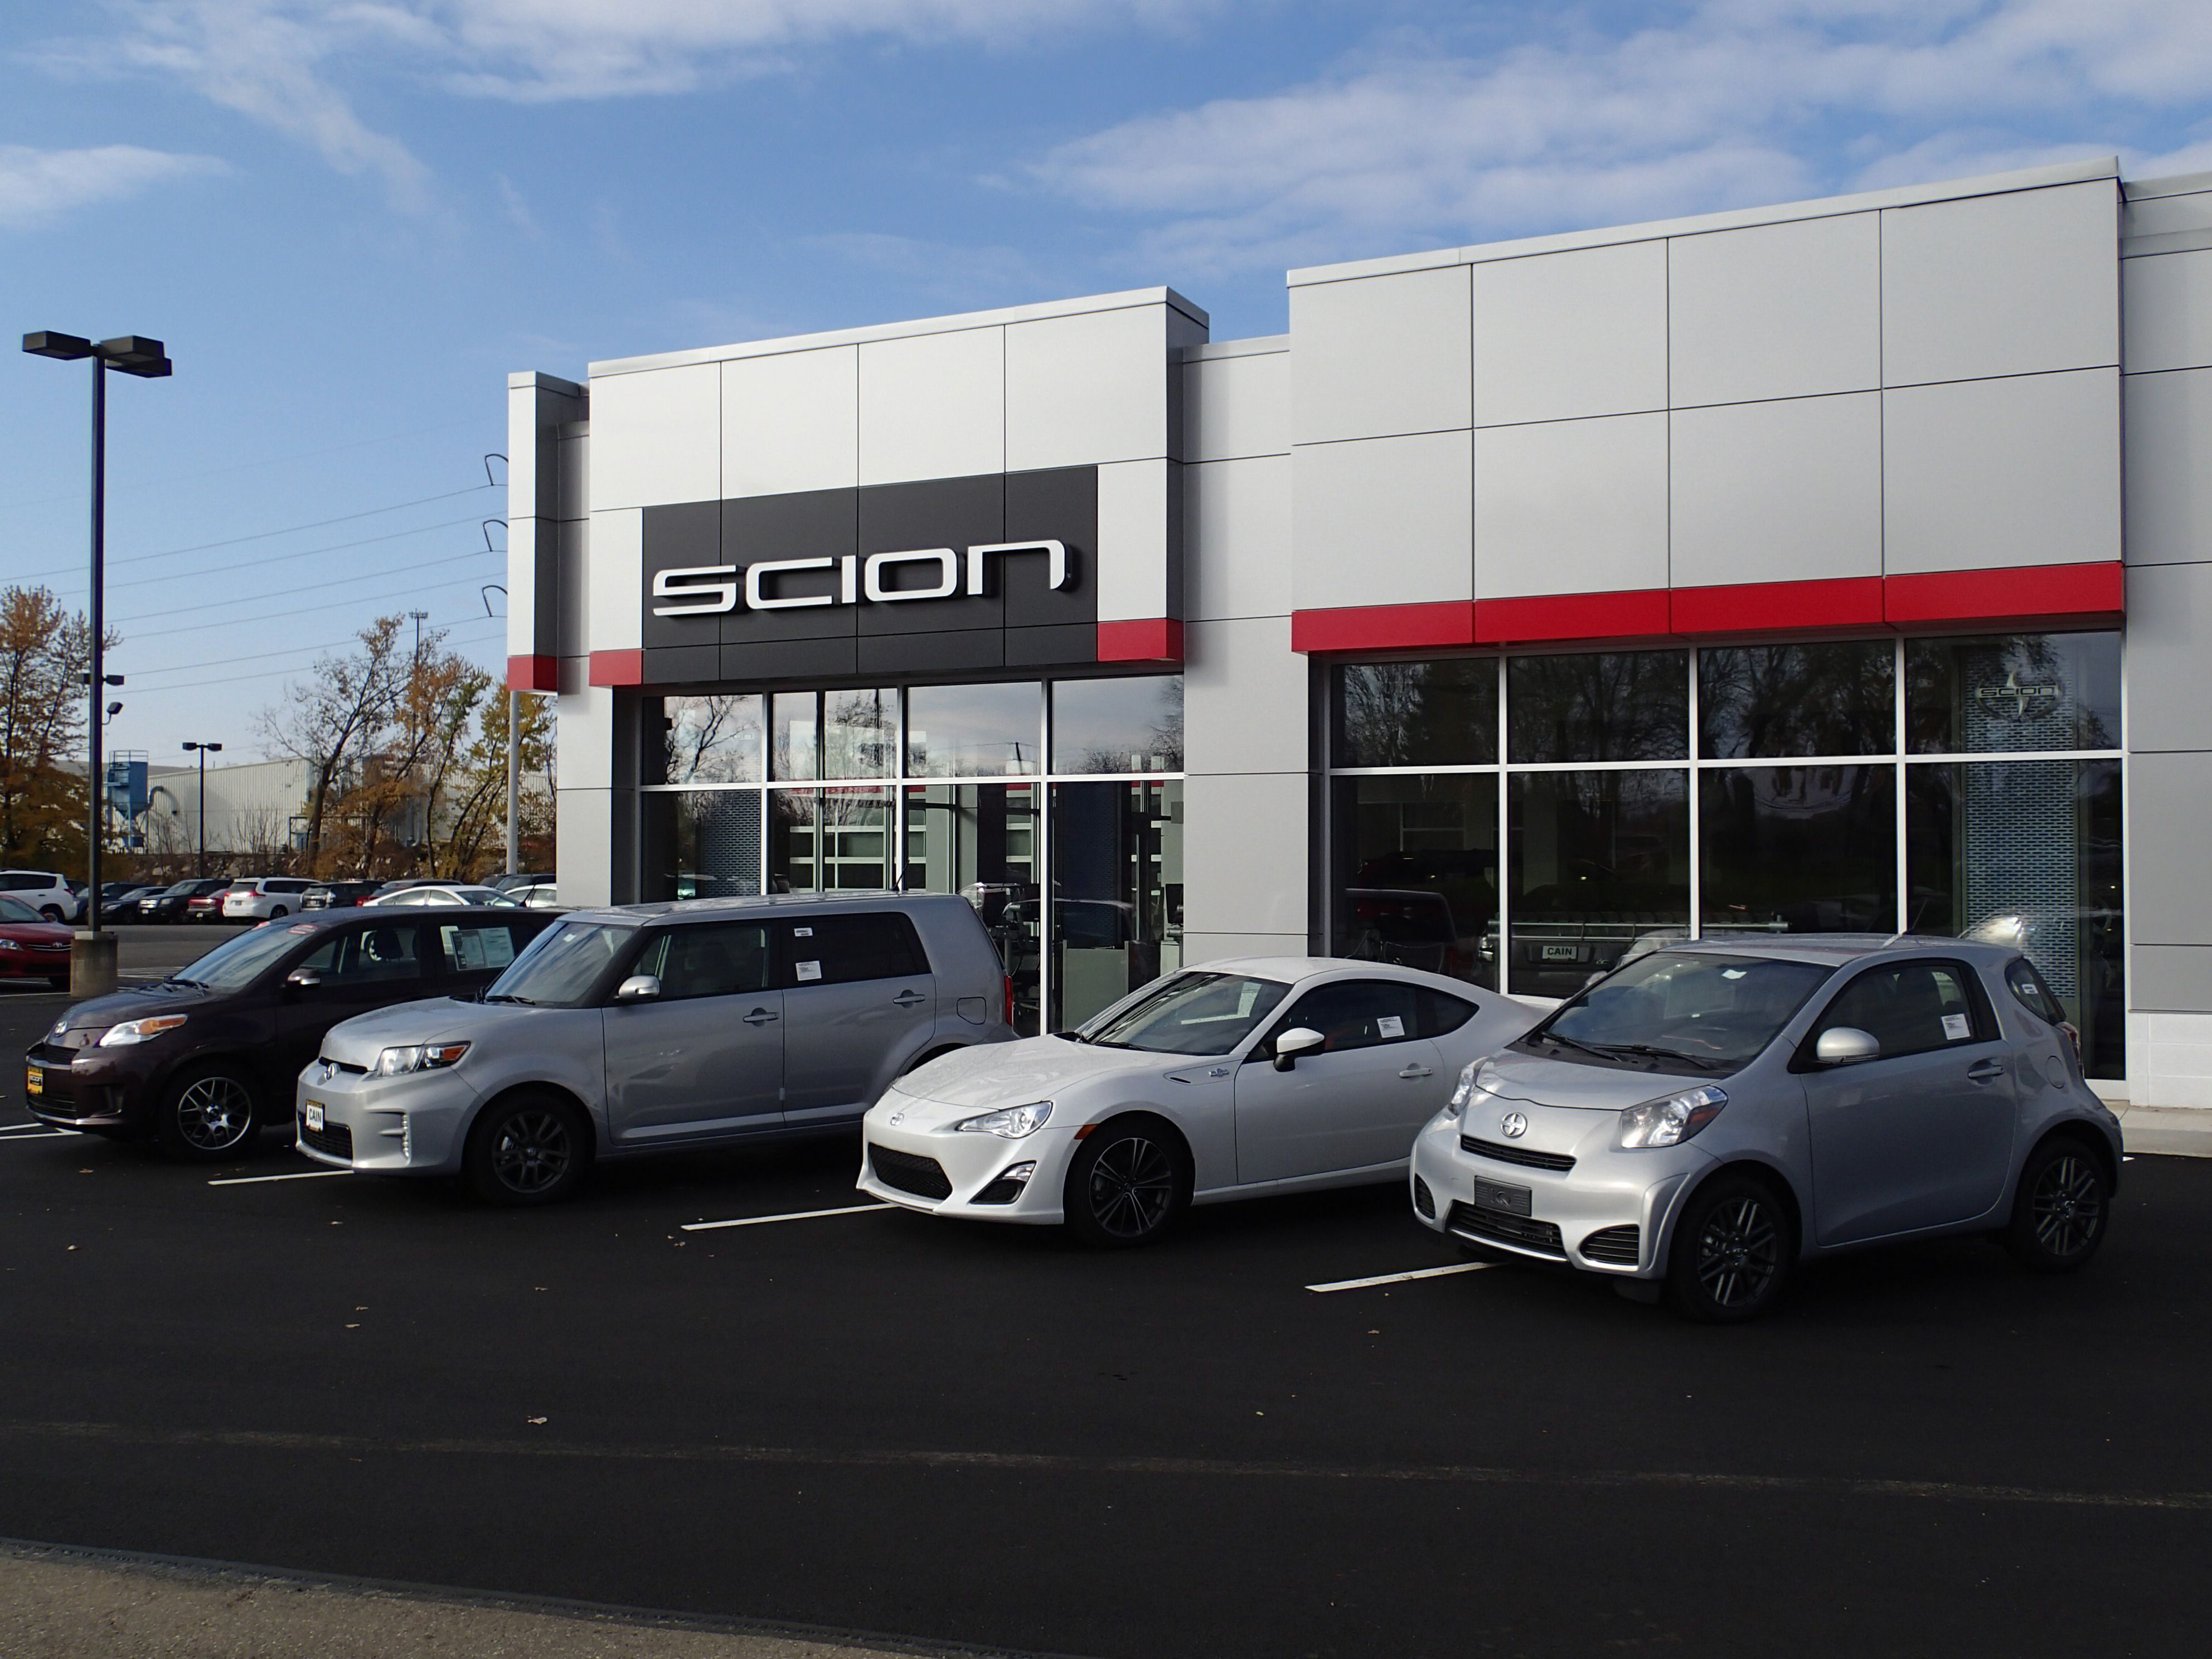 Cain toyota scion s scion showroom our dealership cain toyota pinterest toyota and scion